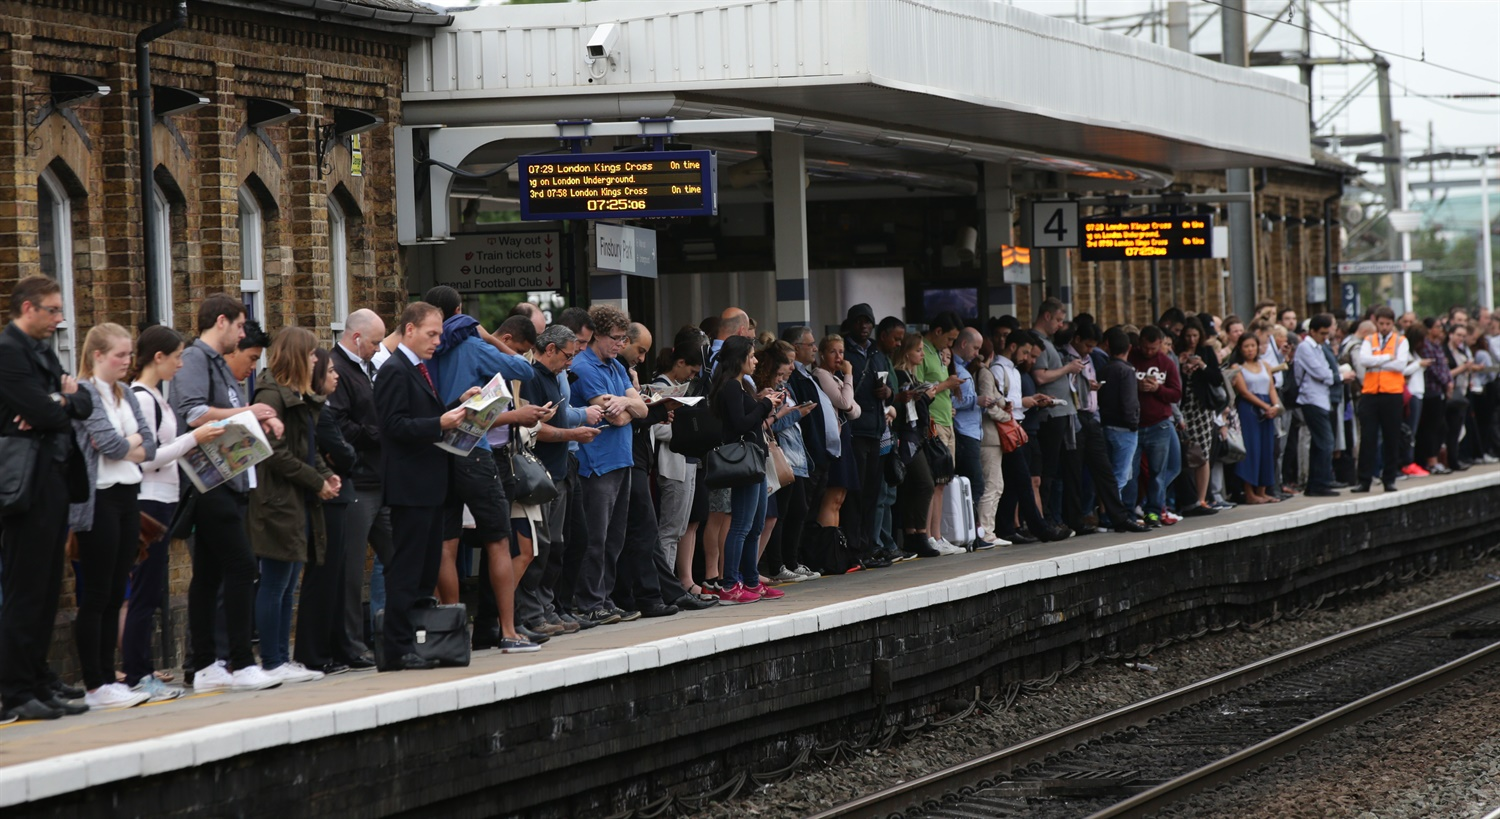 Watchdog forced to postpone closure of London Overground ticket offices after 'unprecedented and overwhelming' response